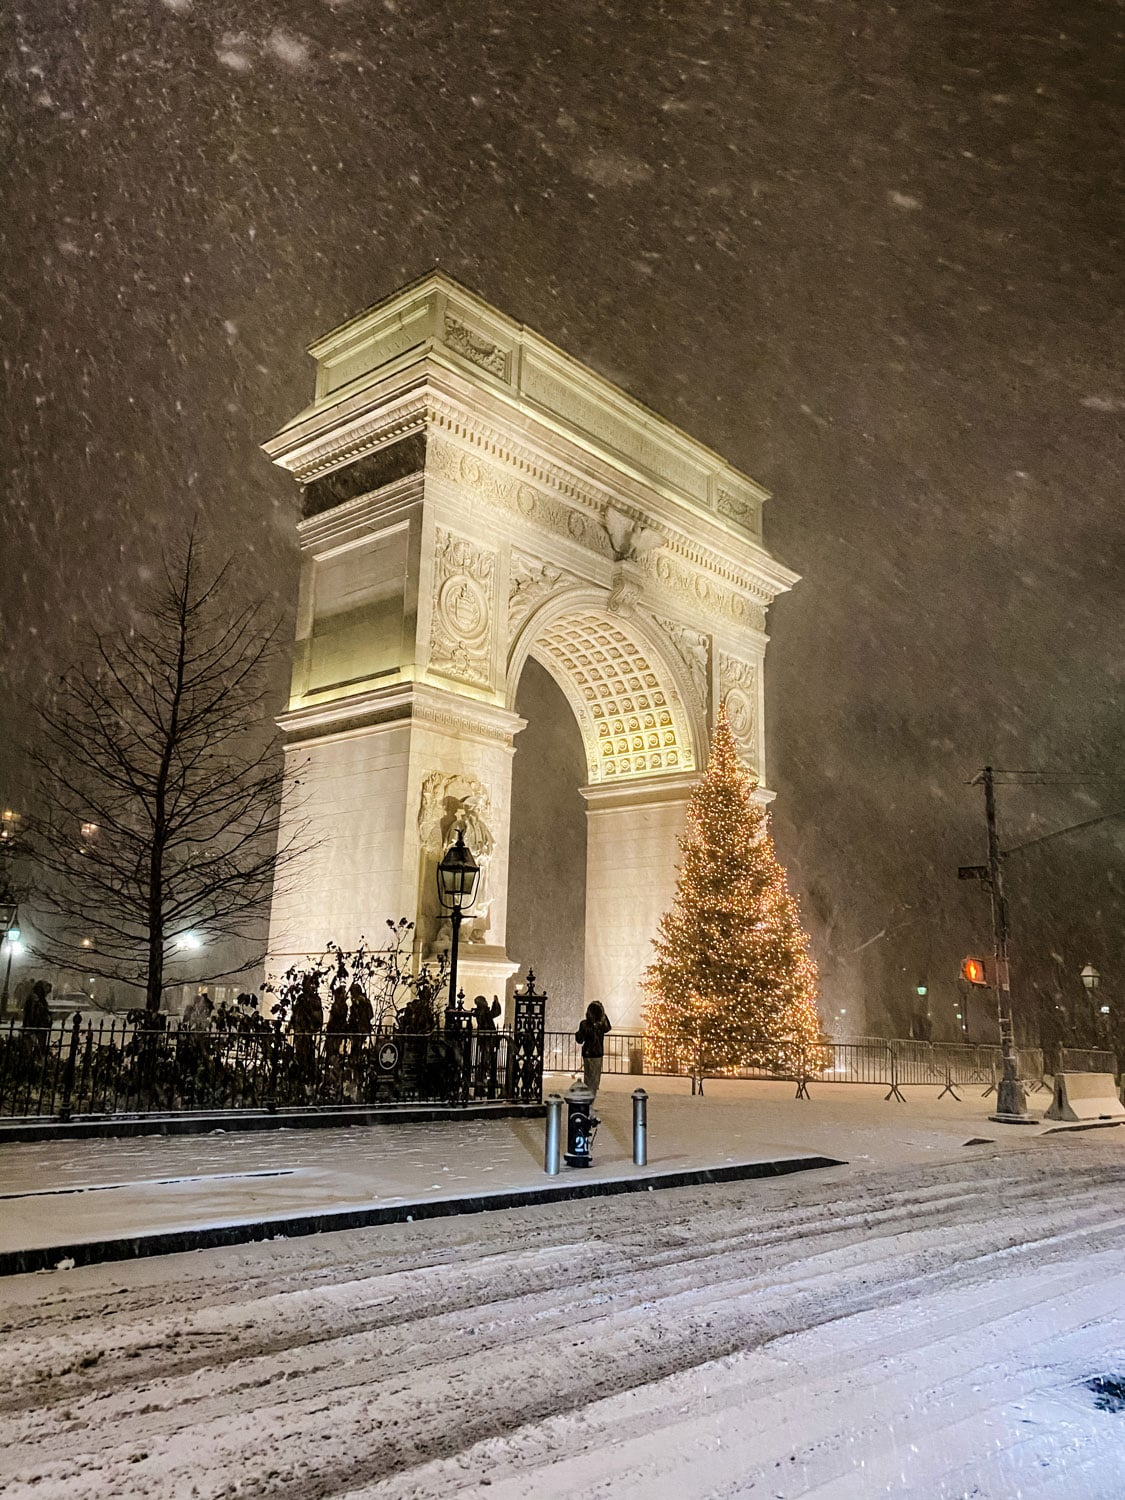 Lifestyle Blogger Annie Diamond was in the city for the first big snow storm in NYC in 5 years